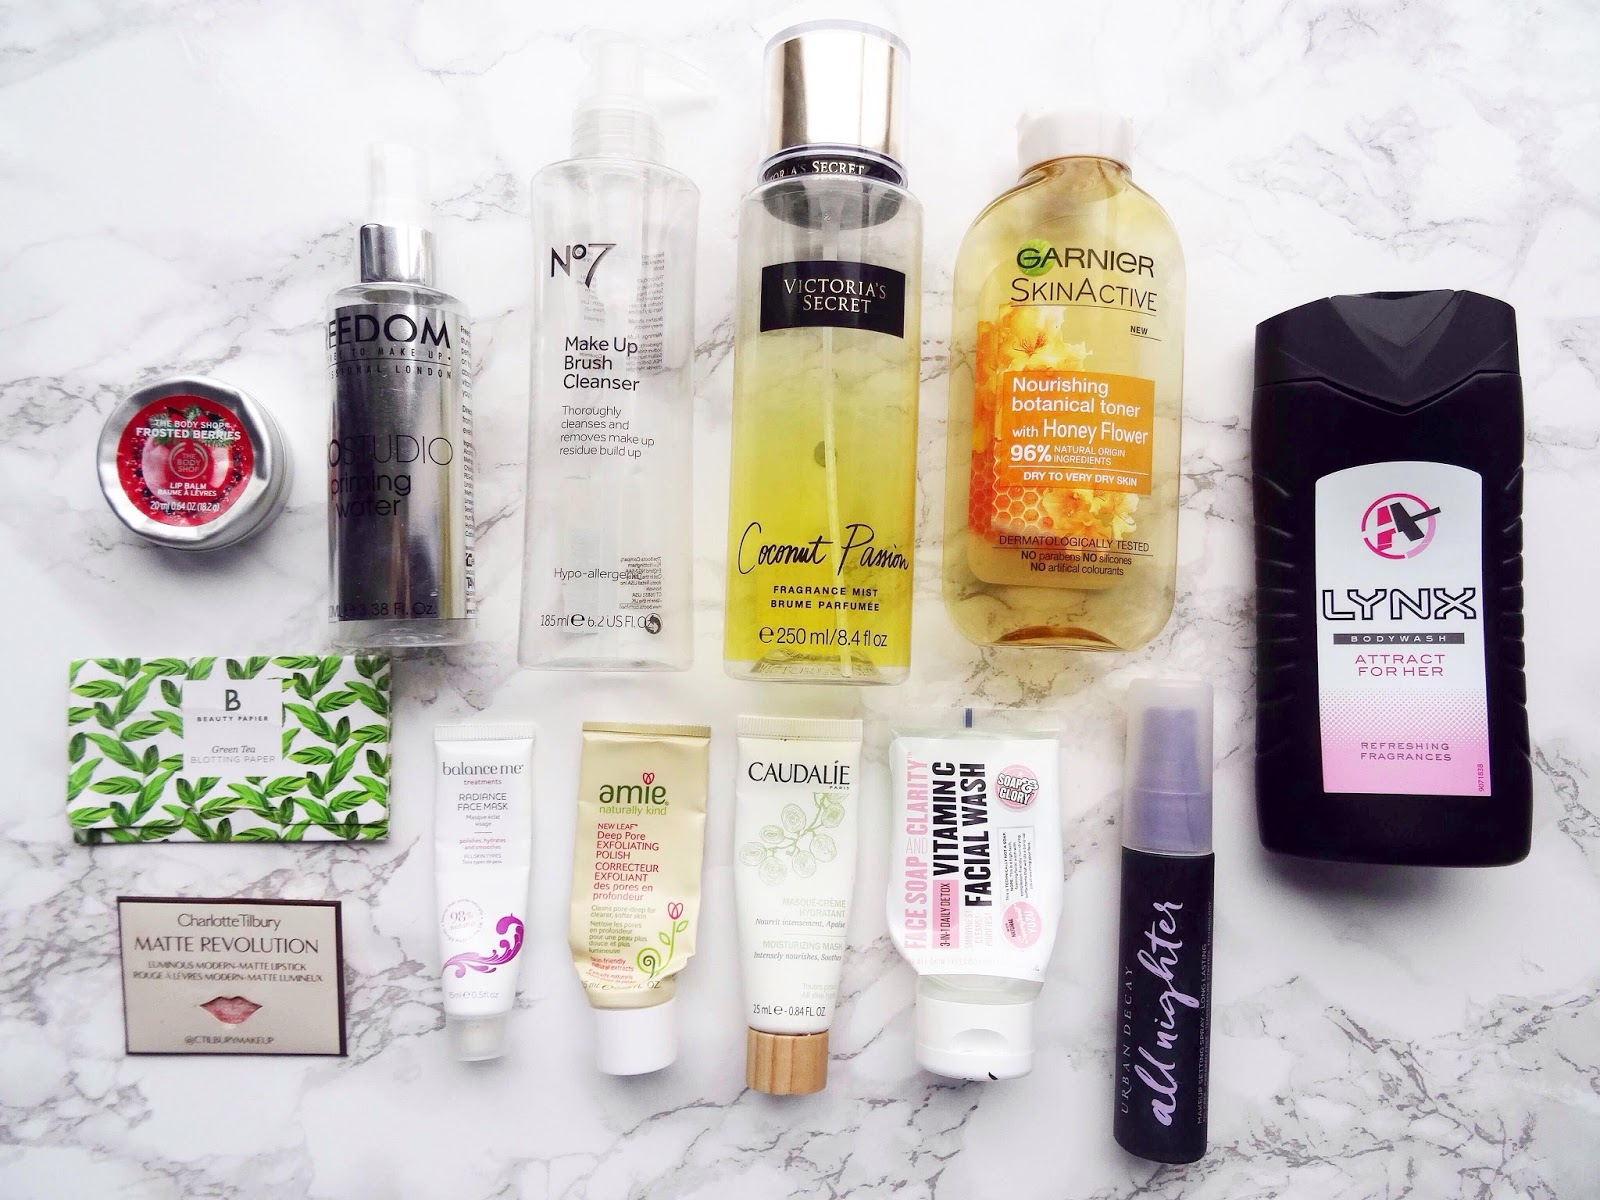 Empties #21 Will I Repurchase? Not For Me